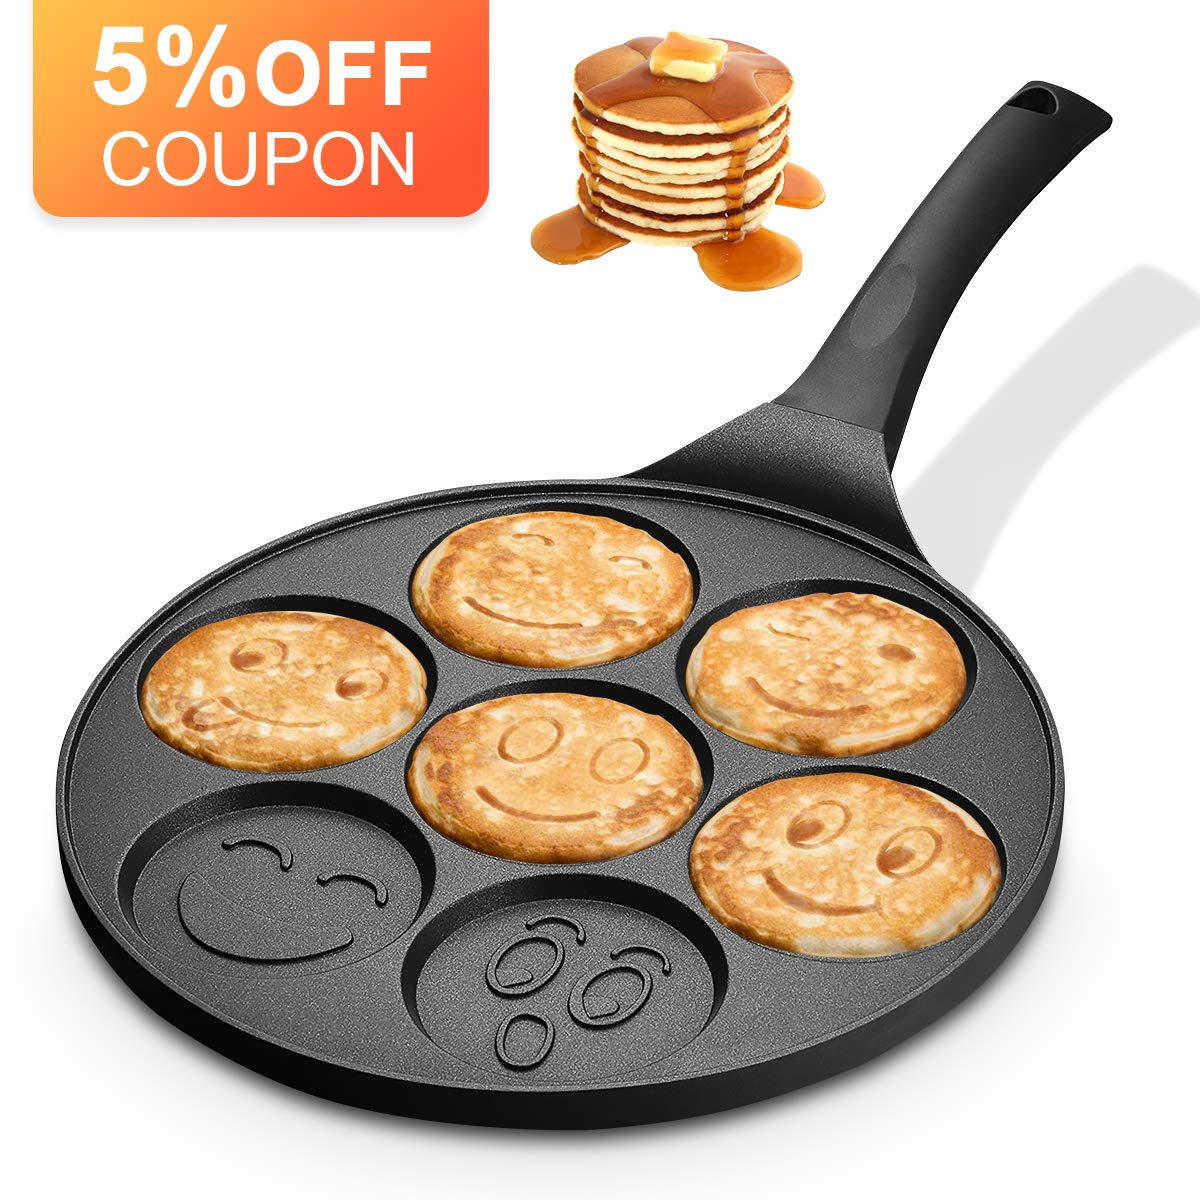 KUTIME Emoji Smiley Cake Griddle Mini Pancake Maker with 7 Flapjack Faces Waffle Maker Non-stick Breakfast Pan for Pancake, Fried Egg by KUTIME